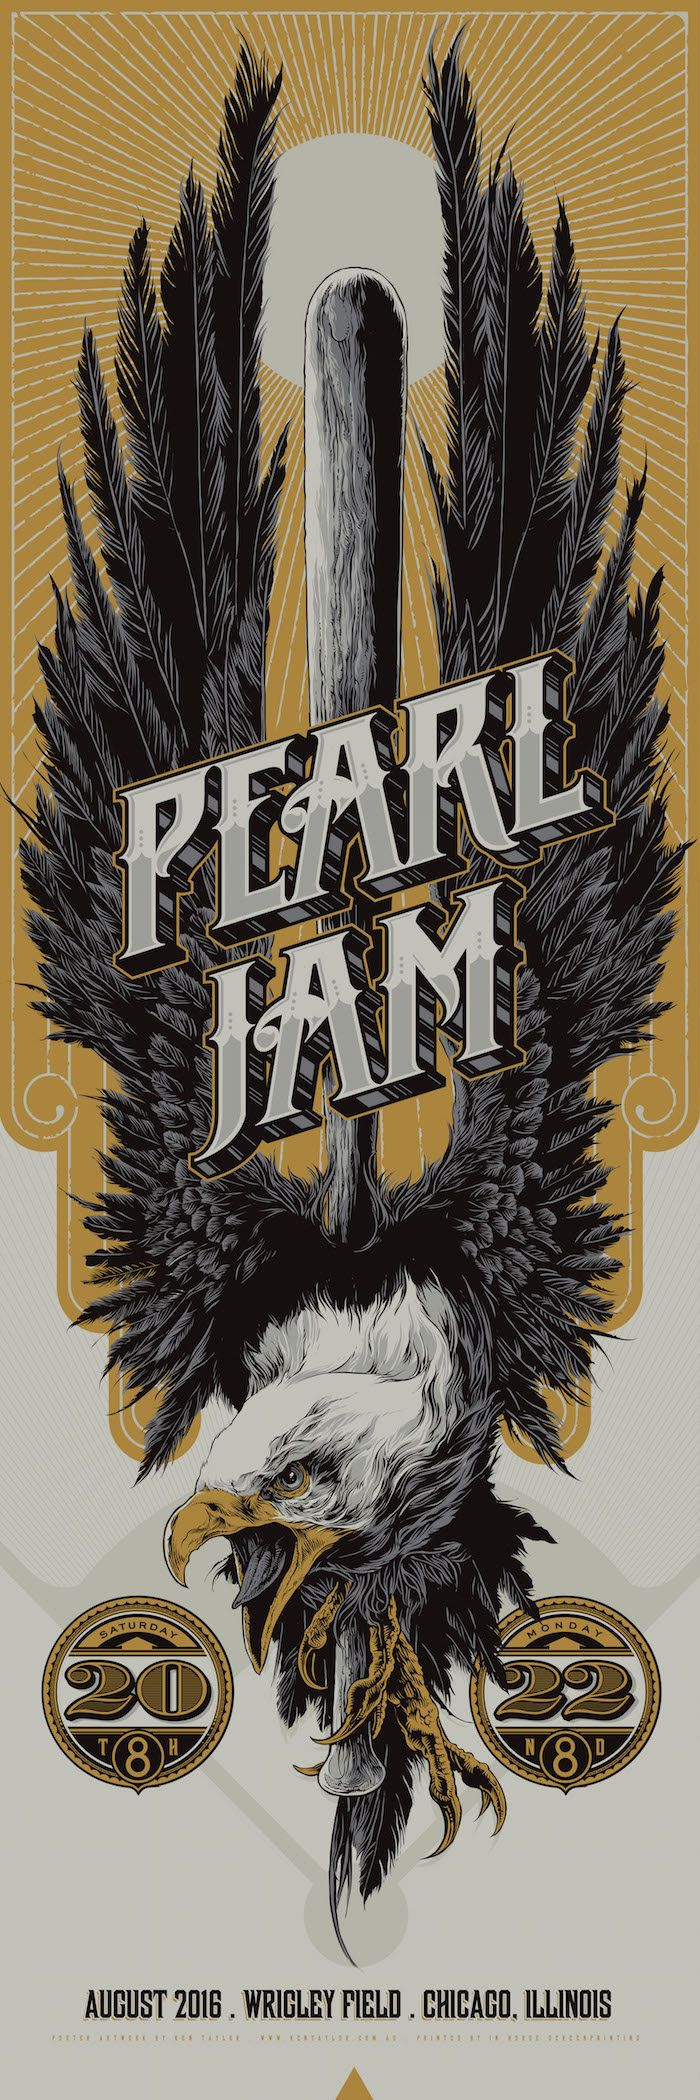 Pearl Jam and Dave Matthews Band gig posters by Ken Taylor